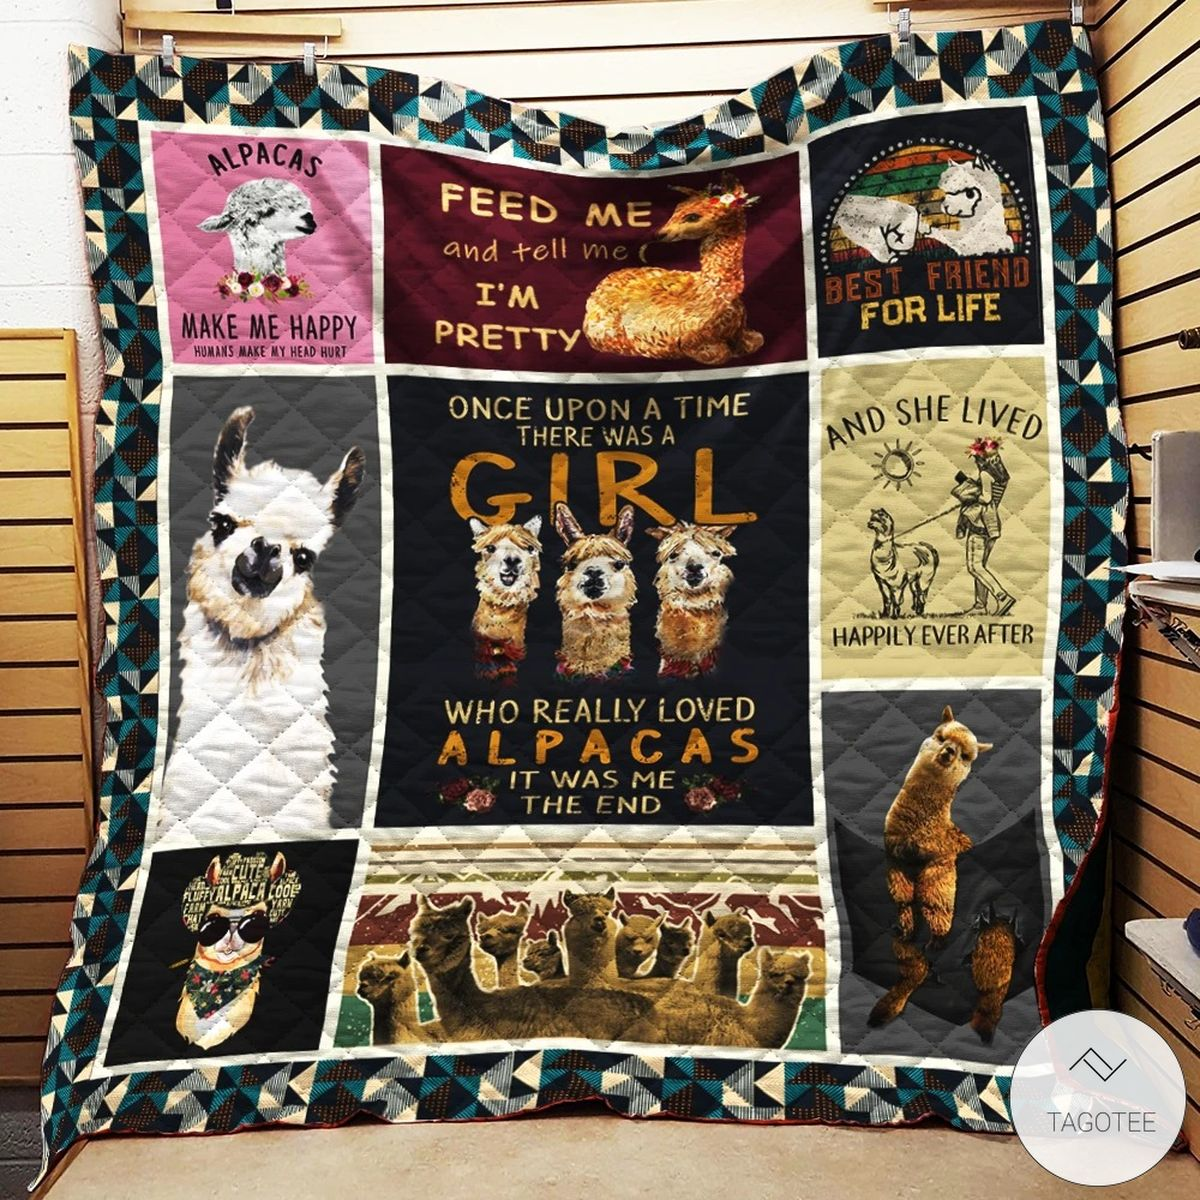 One Upon A Time There Was A Girl Who Really Loved Alpacas Quilt